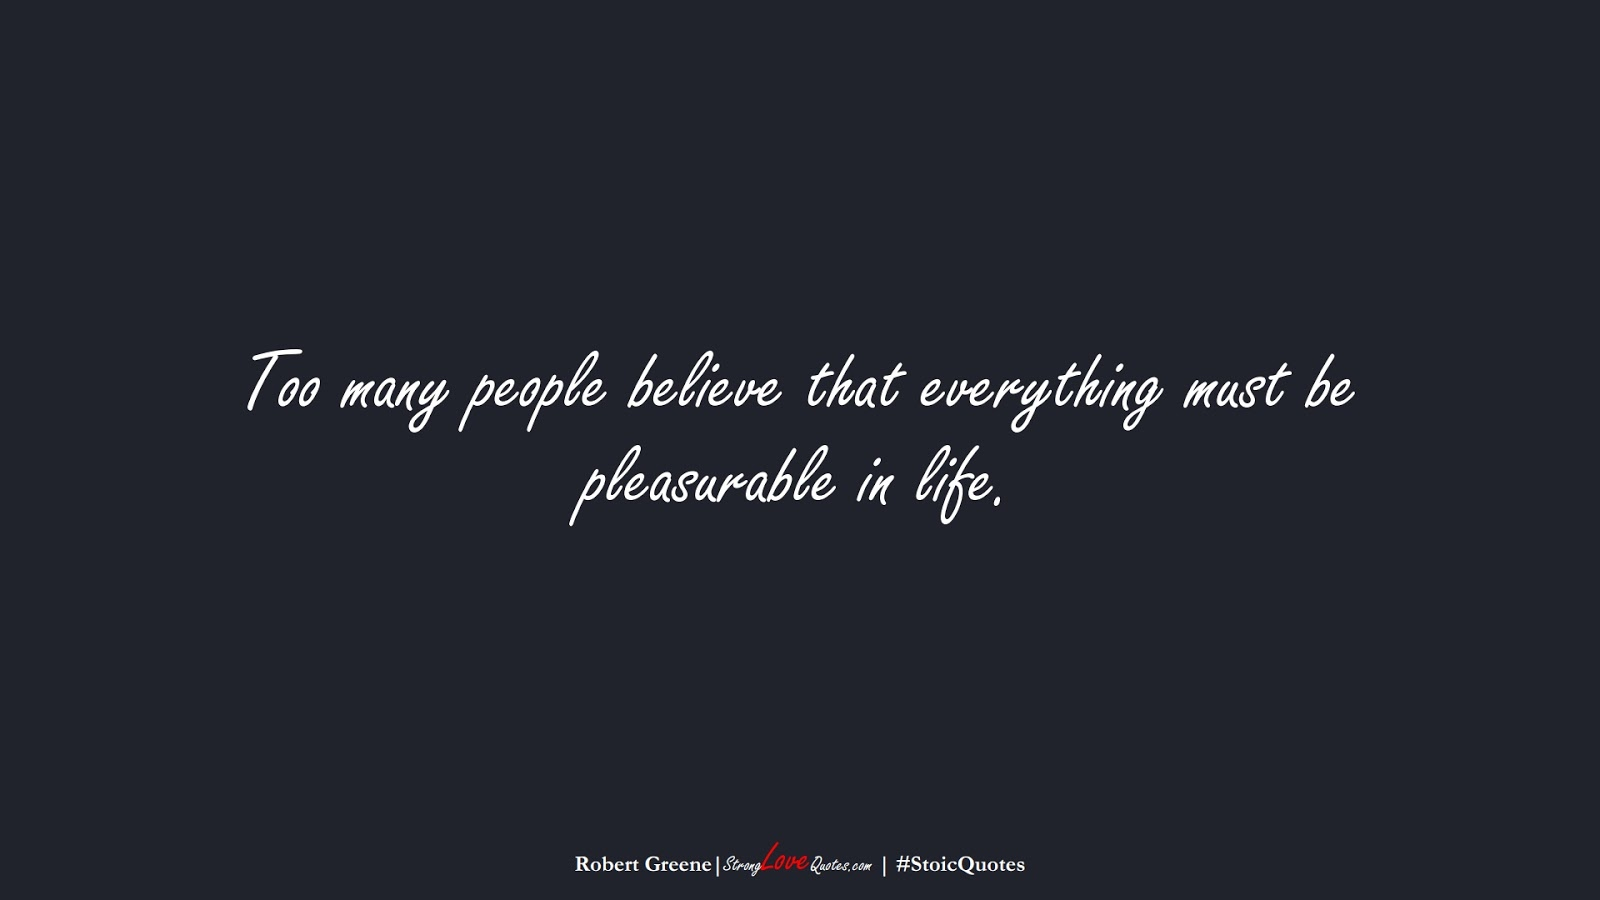 Too many people believe that everything must be pleasurable in life. (Robert Greene);  #StoicQuotes